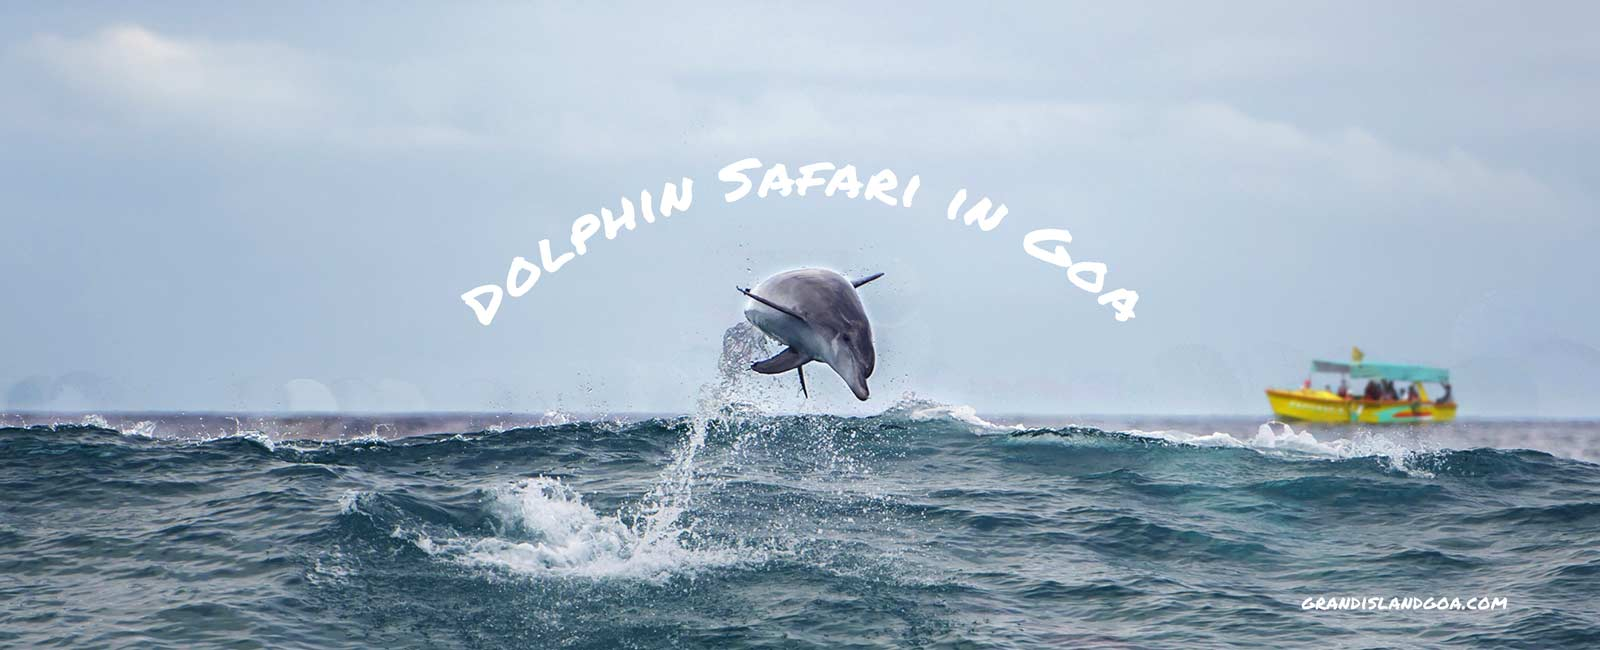 dolphin-safari-goa